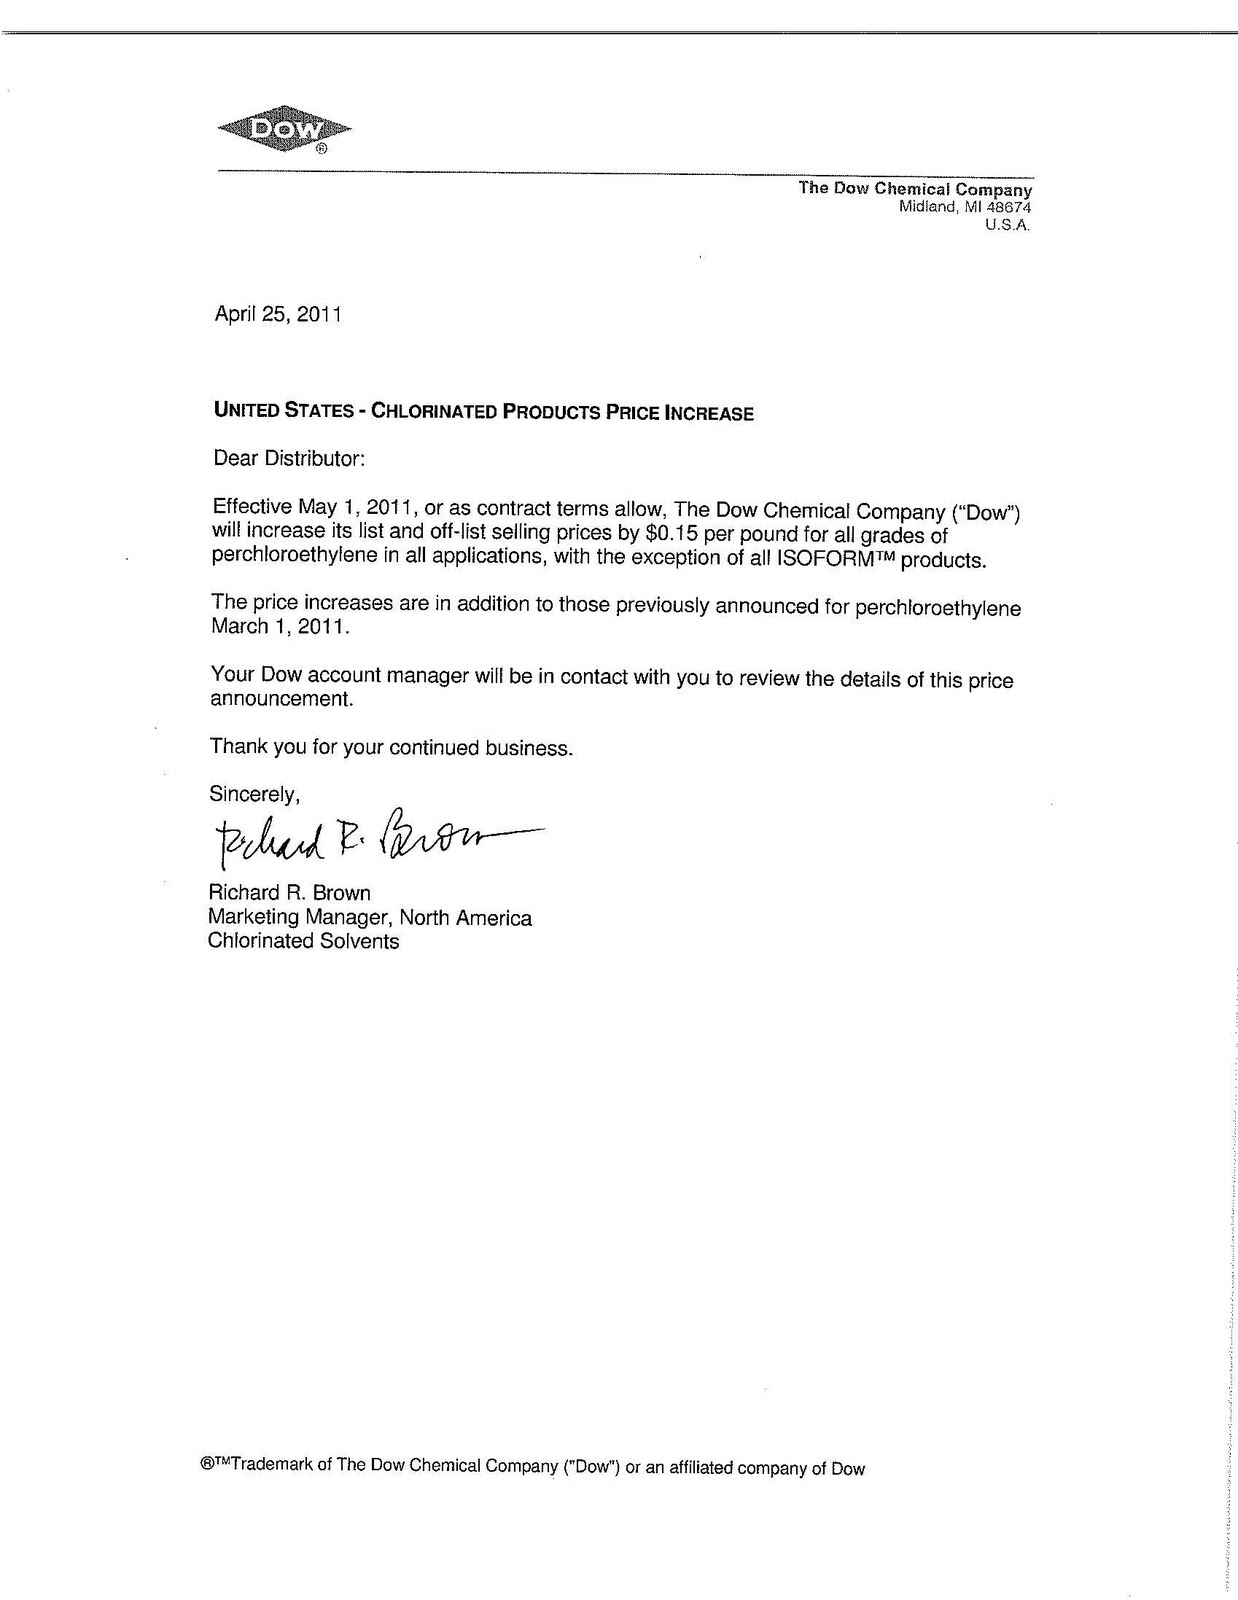 Chemical market info from rcu chemical llc april 2011 dow announces increases for perchloroethylene spiritdancerdesigns Images